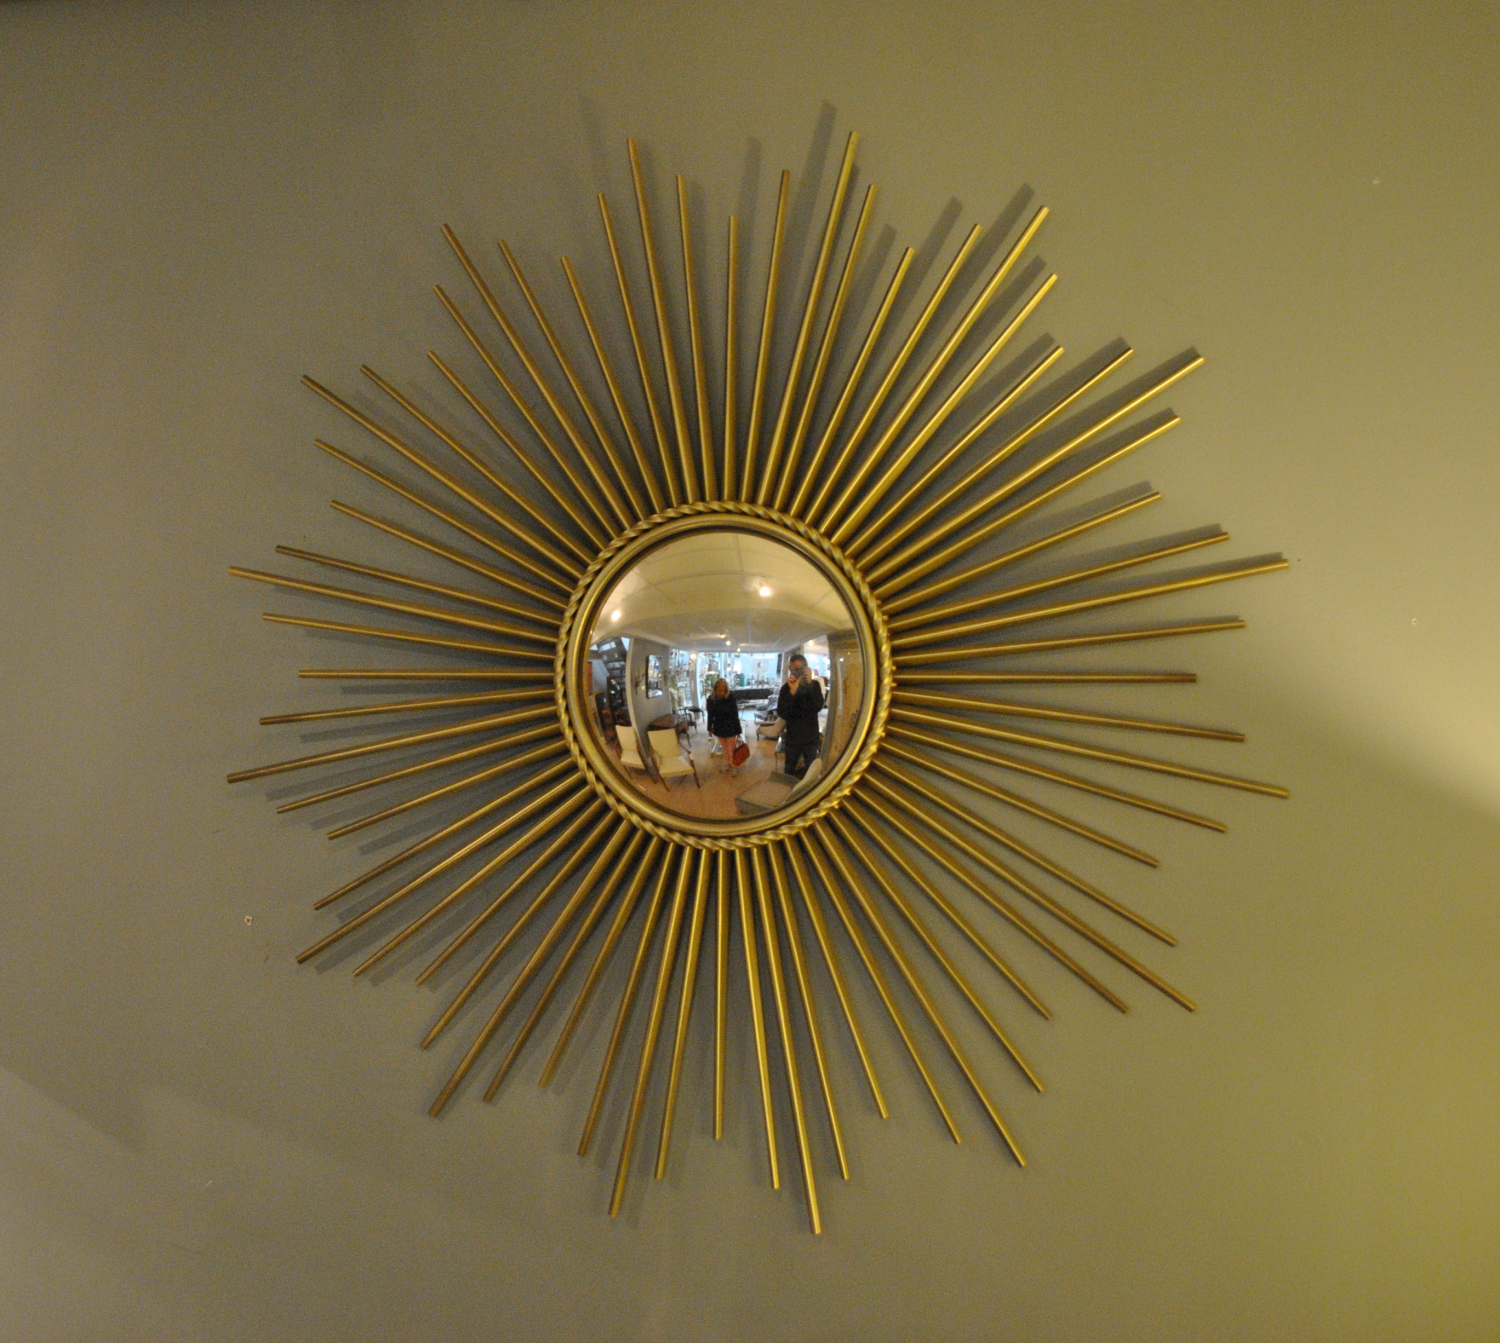 Vallauris Sunburst Mirror 2